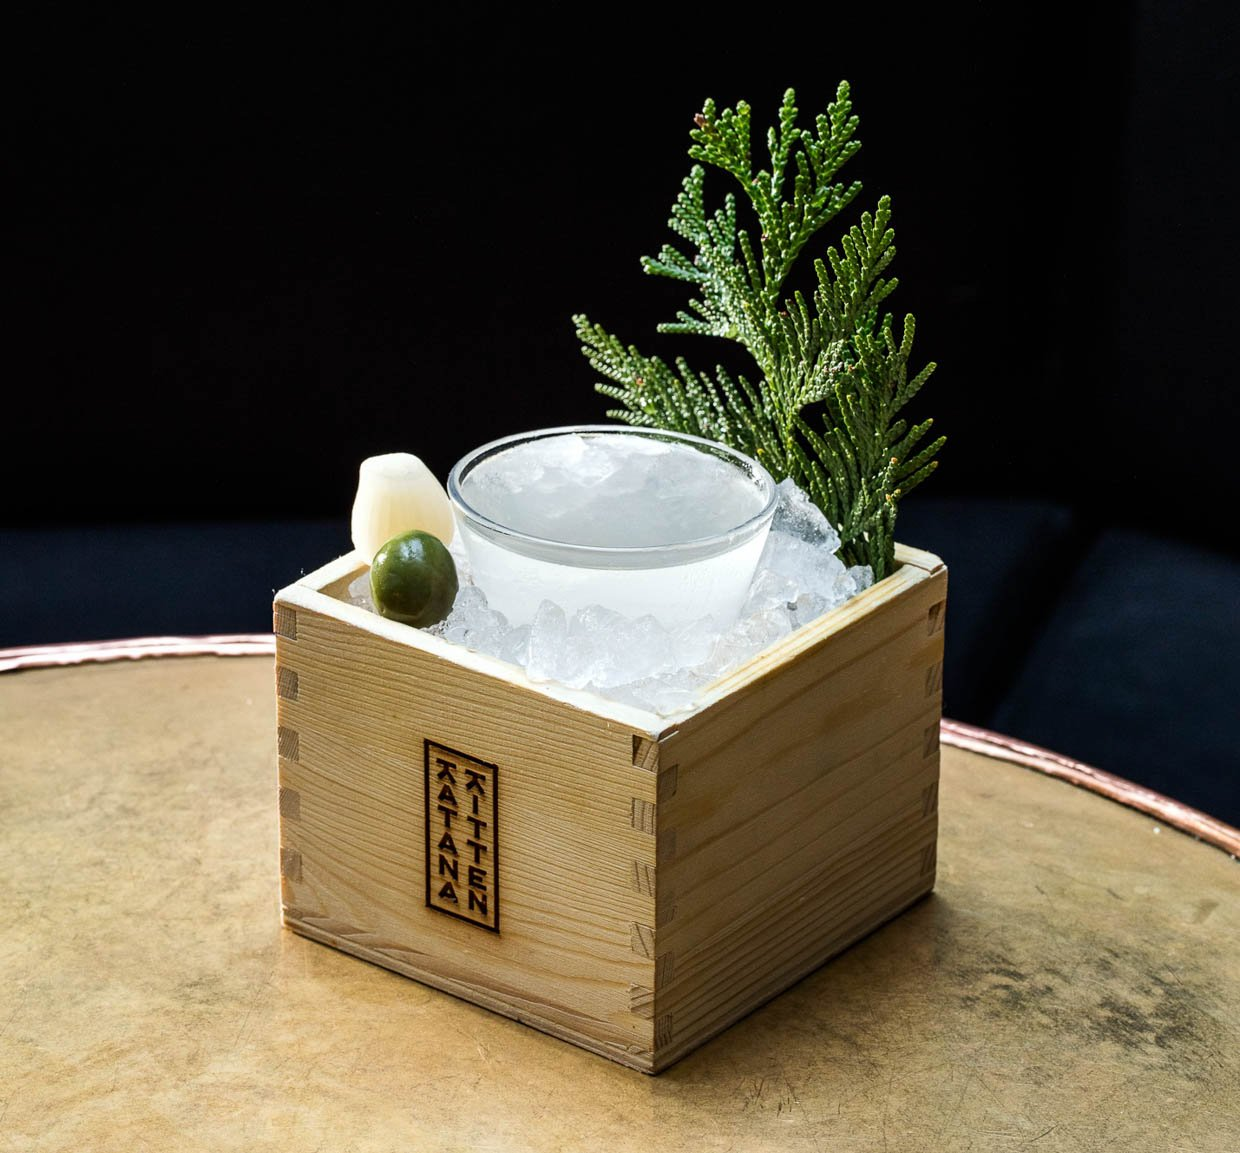 The Japanese Art of the Cocktail